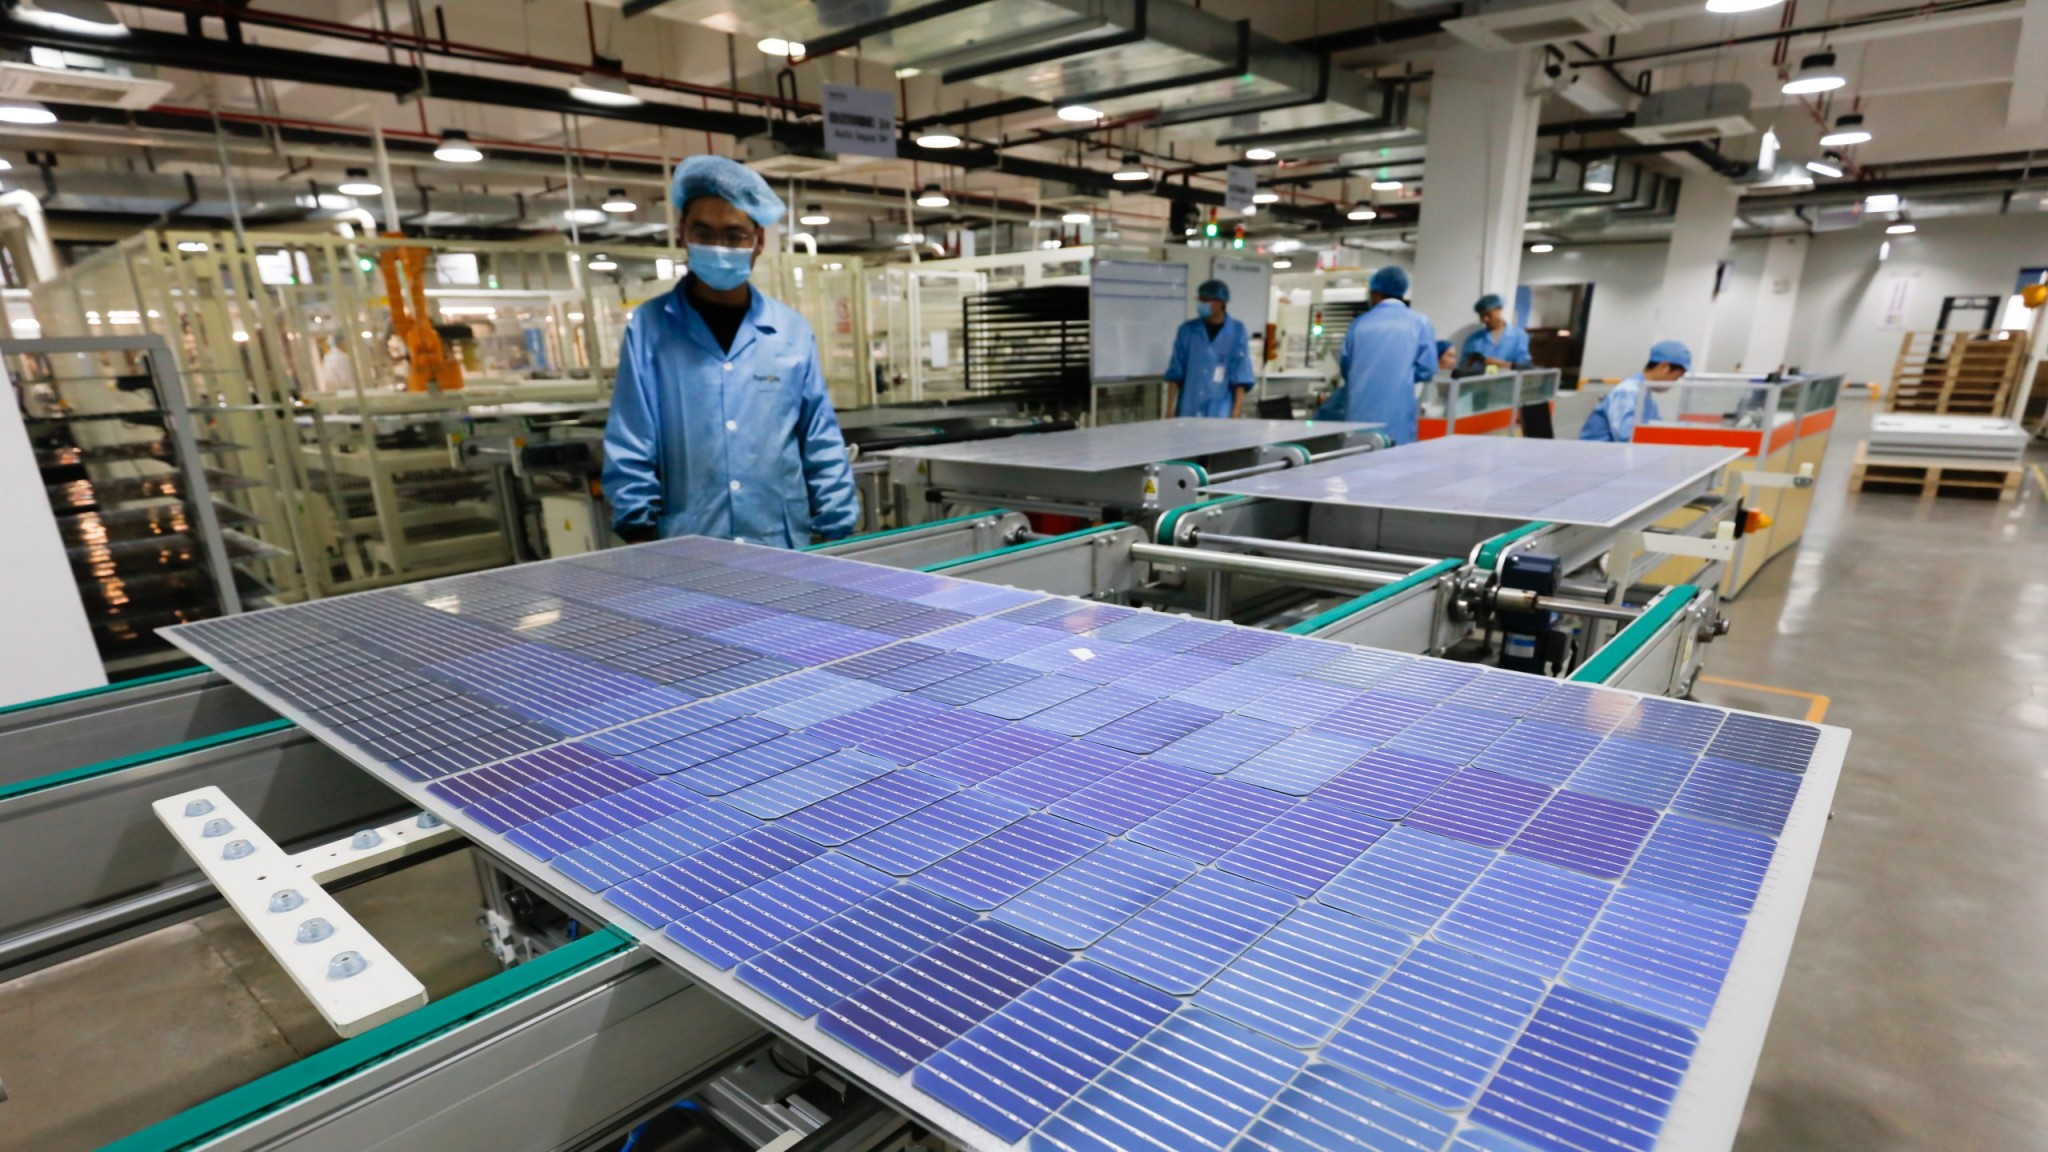 Workers operate equipment to produce photovoltaic circuit boards at a production workshop of a green energy technology company